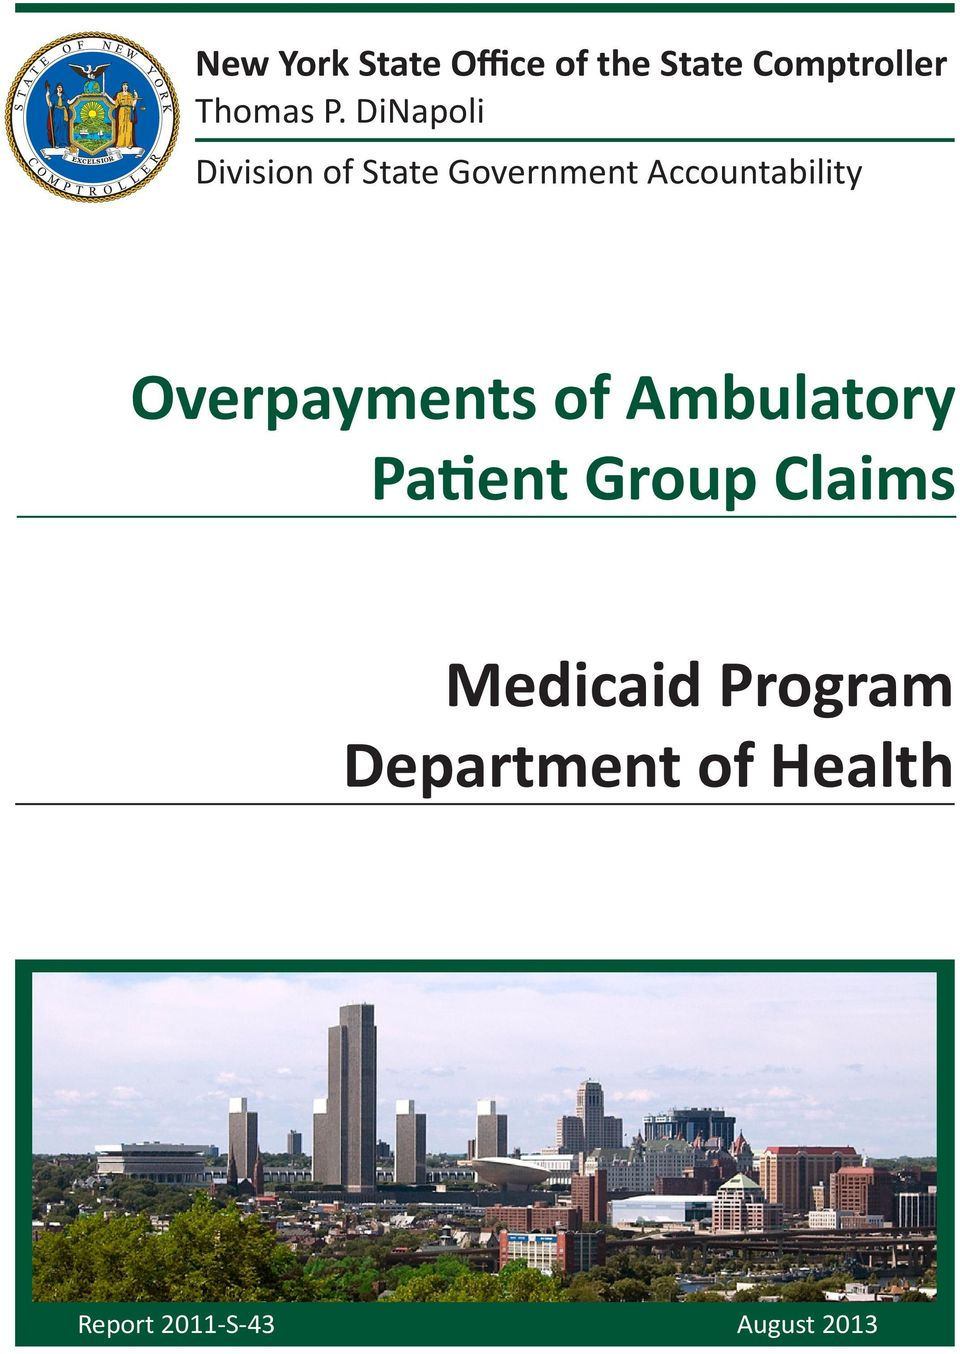 Overpayments of Ambulatory Patient Group Claims